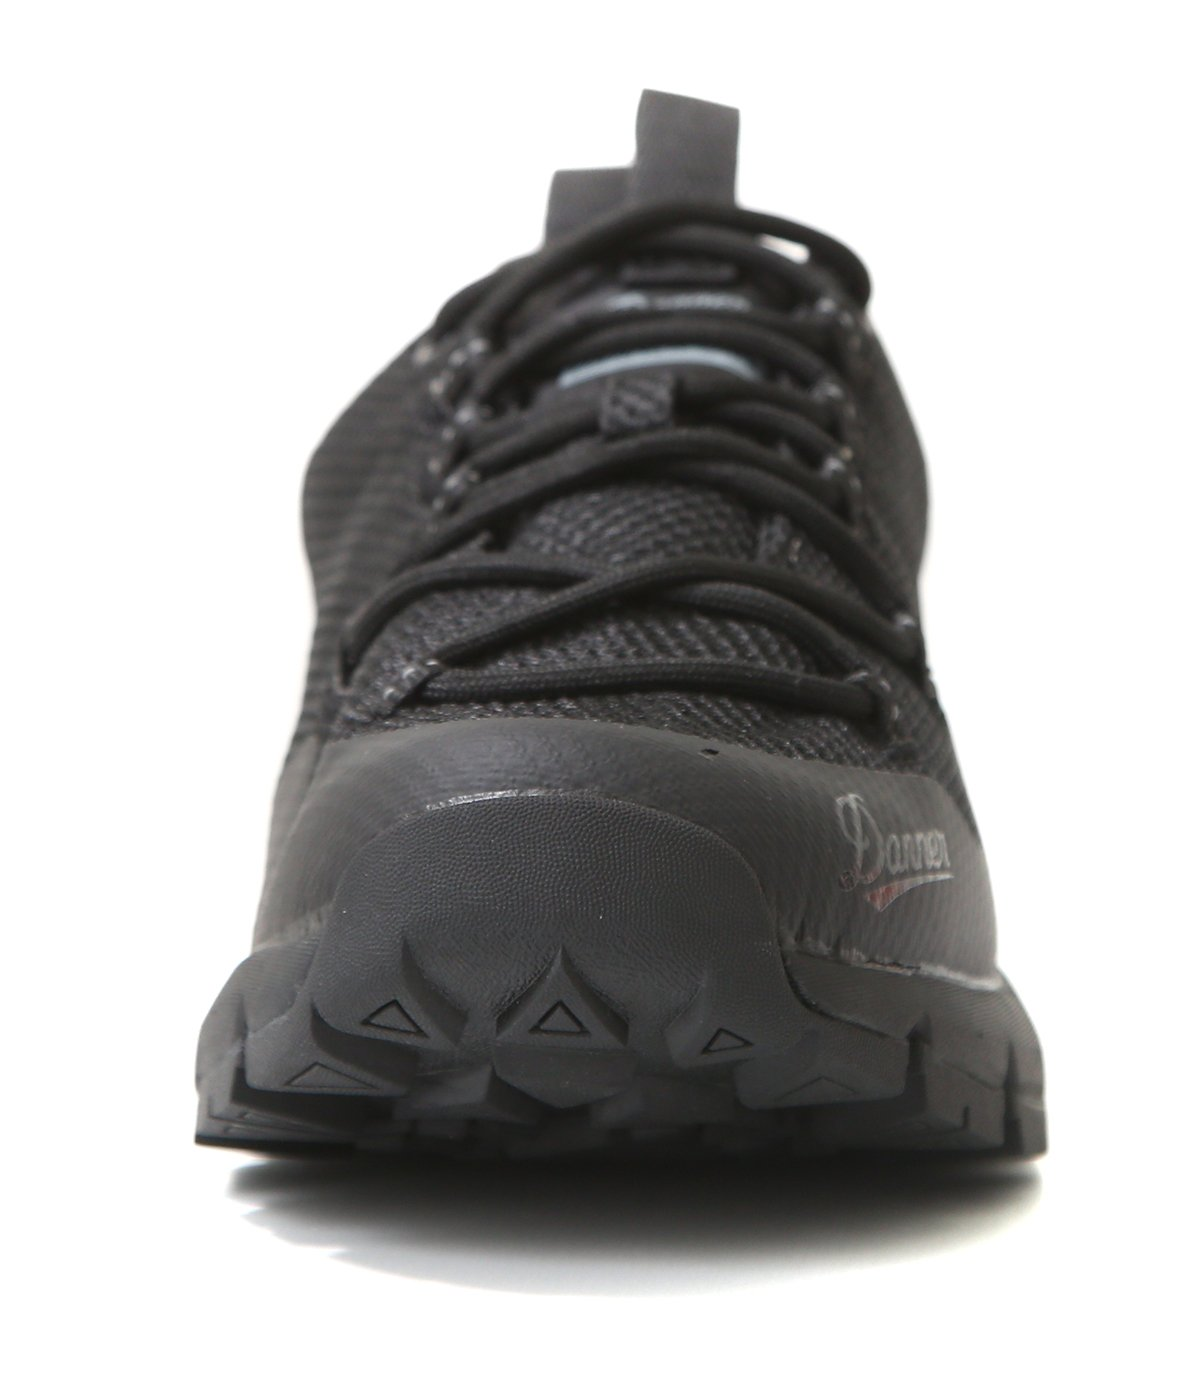 RIDGE RUNNER PLUS -M.Black-